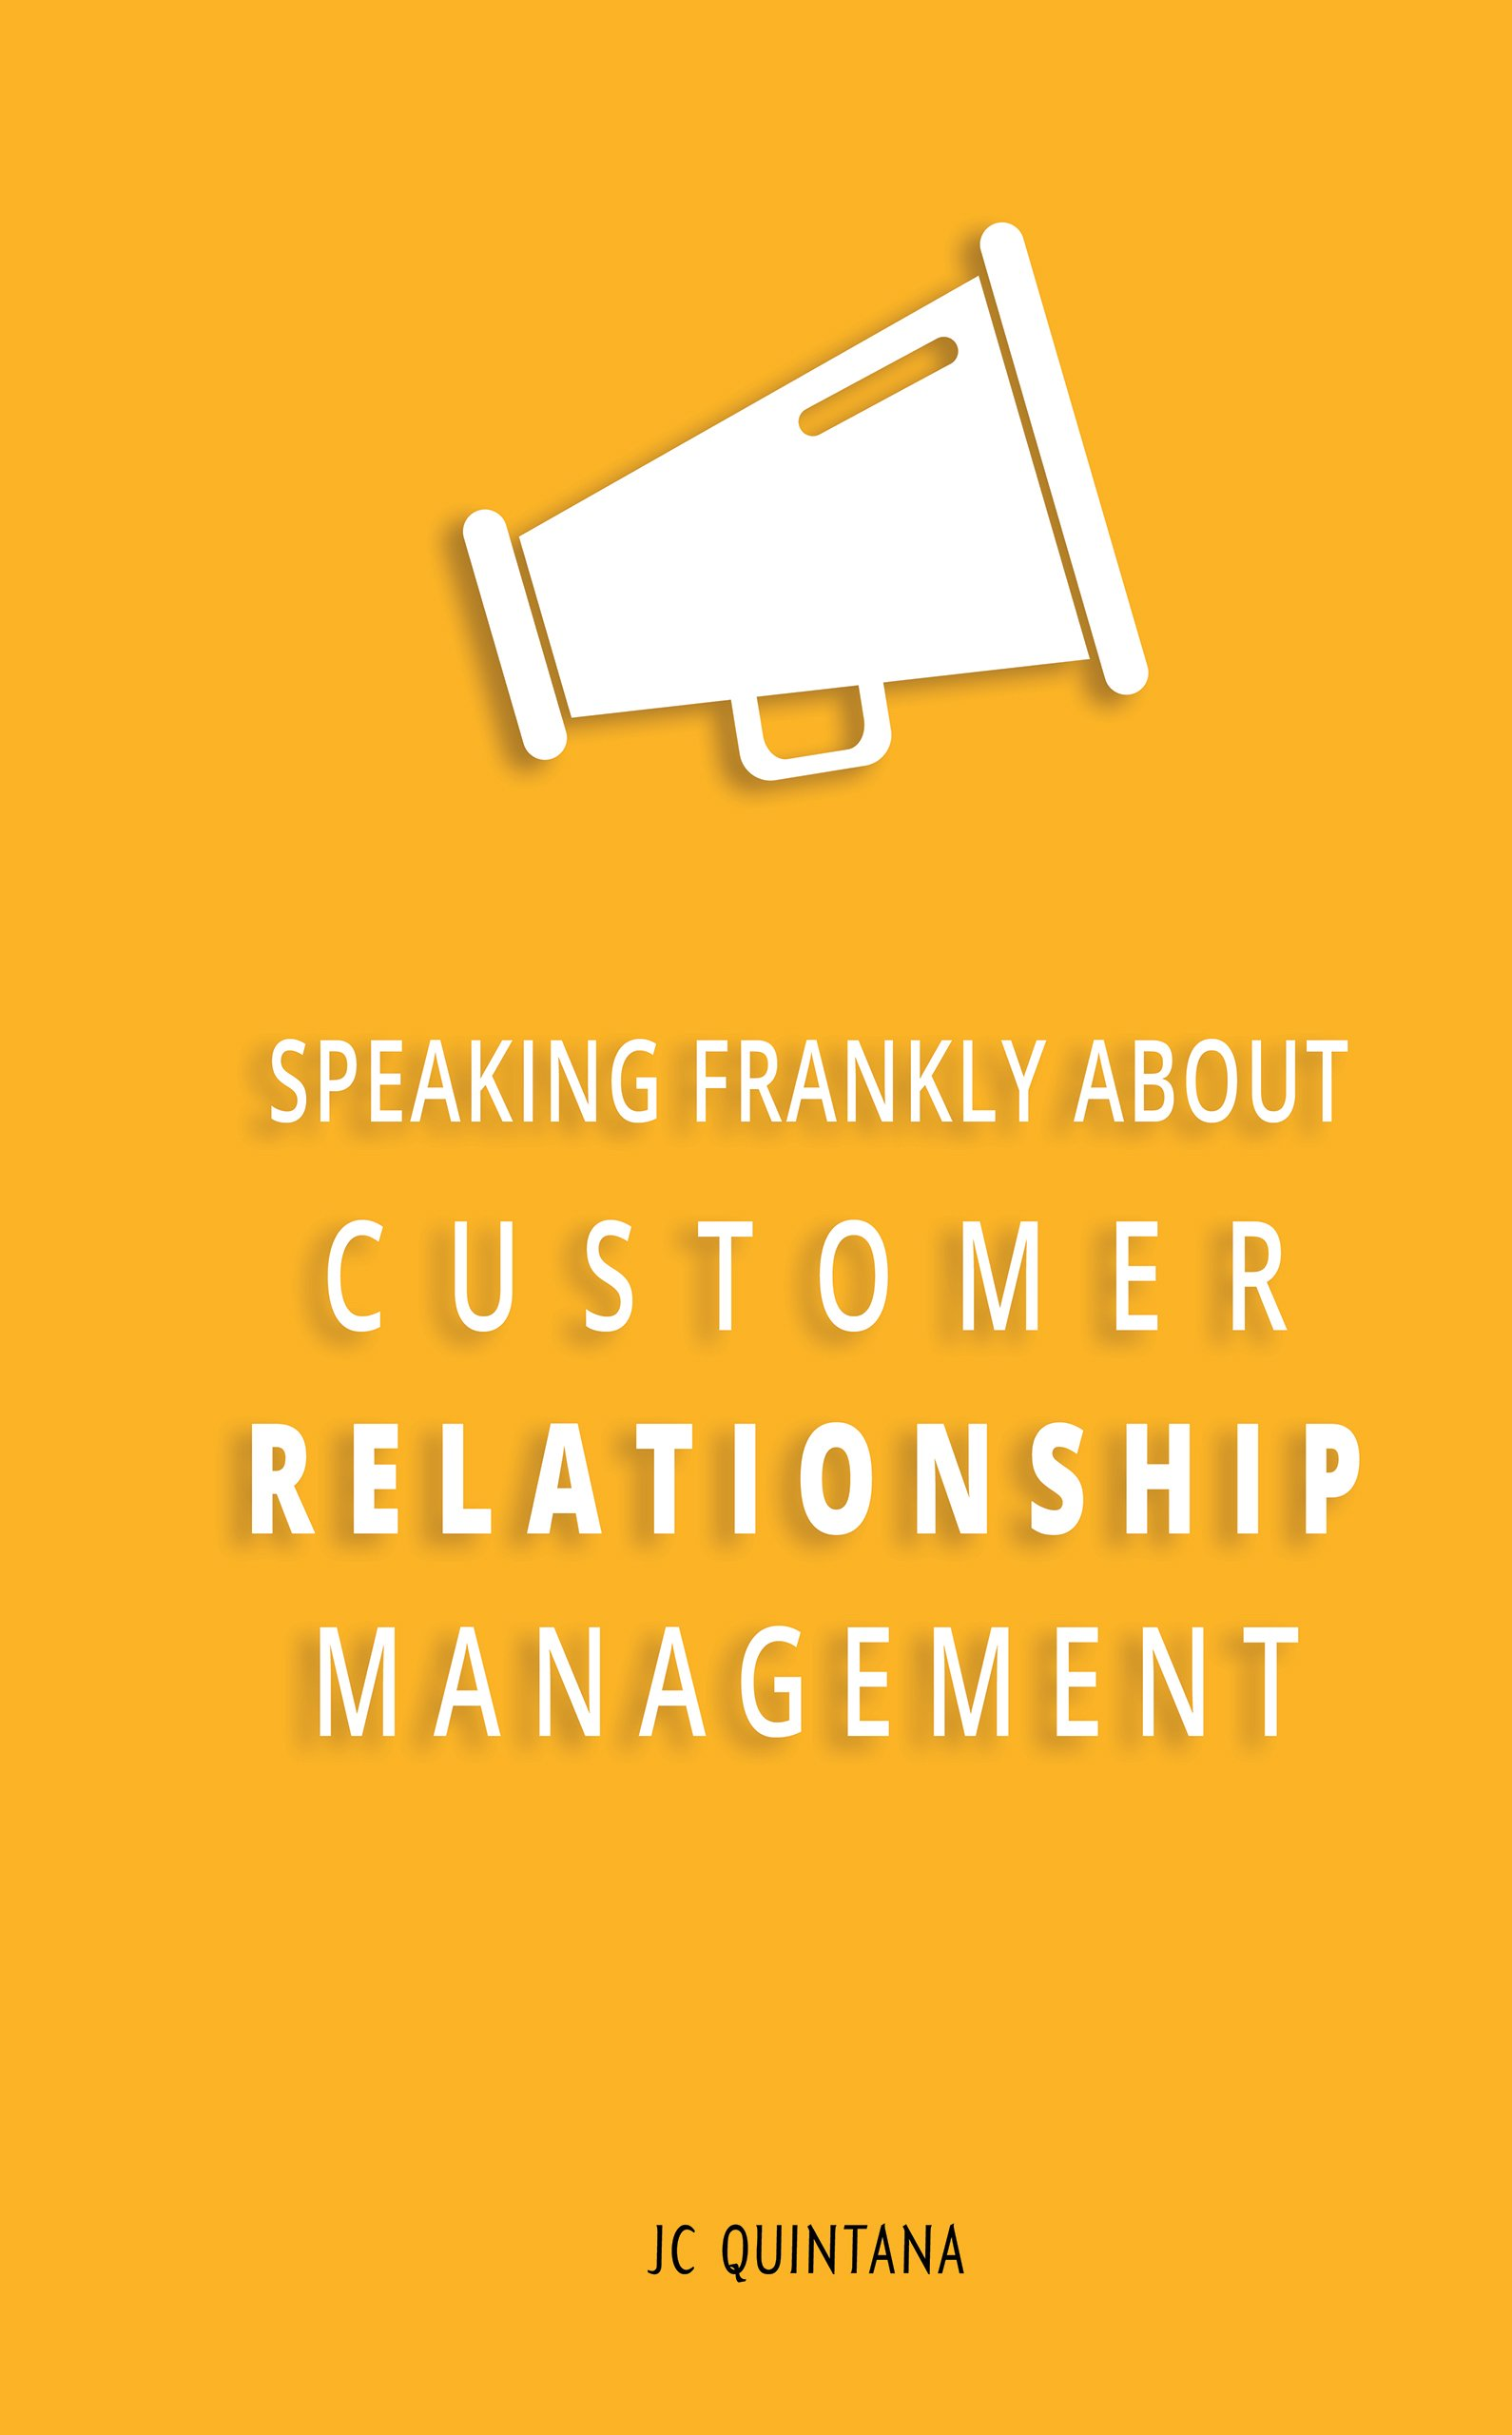 Speaking Frankly About Customer Relationship Management: Why Customer Relationship Management Is Still Alive And Vital To Your Company's Customer Strategy